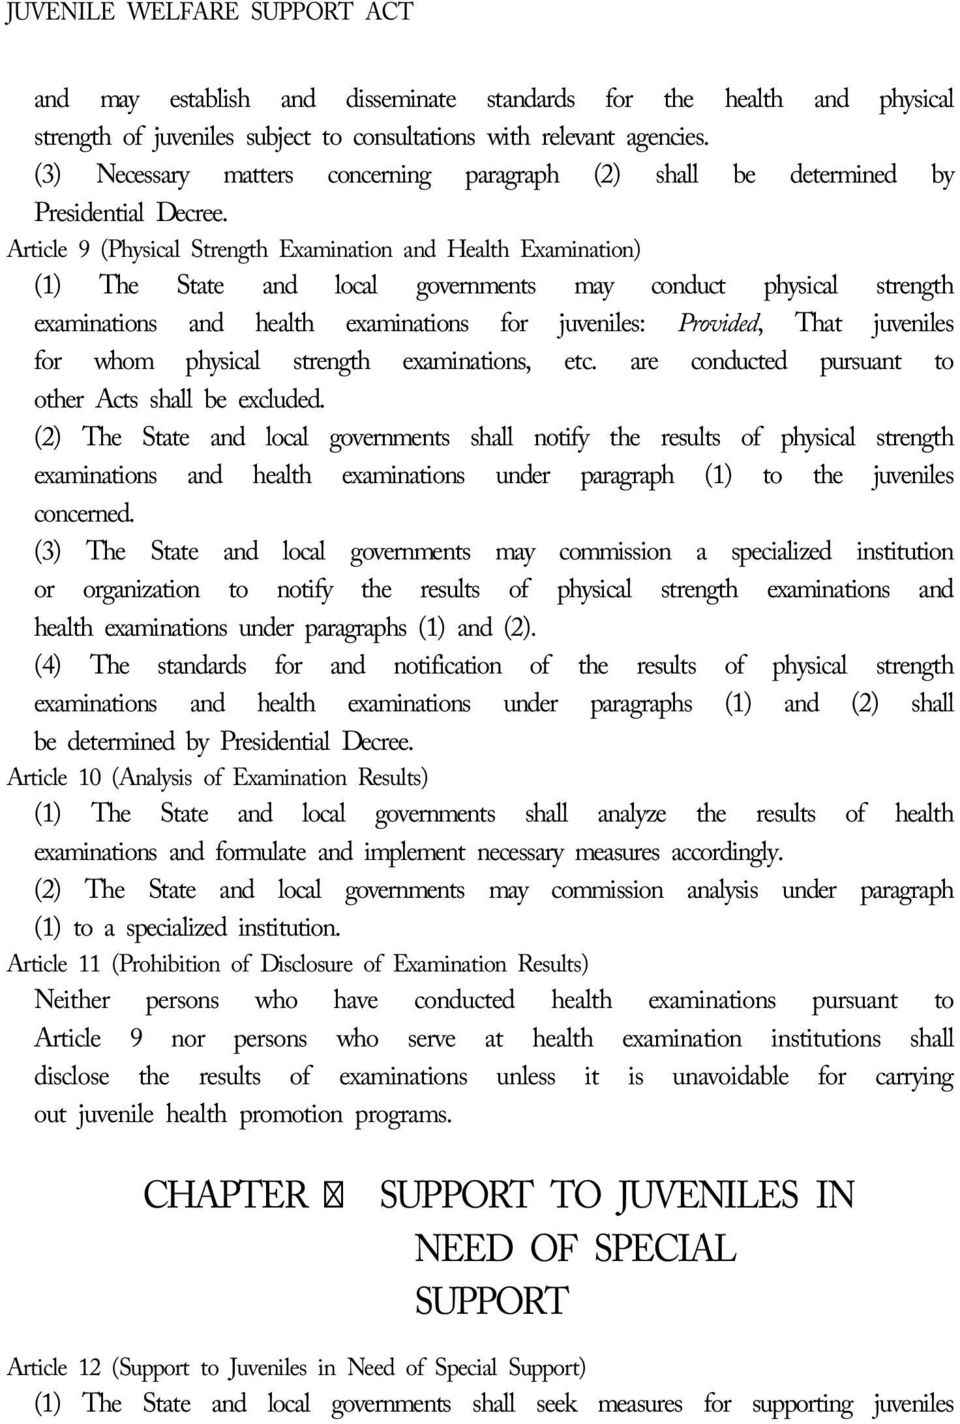 Article 9 (Physical Strength Examination and Health Examination) (1) The State and local governments may conduct physical strength examinations and health examinations for juveniles: Provided, That